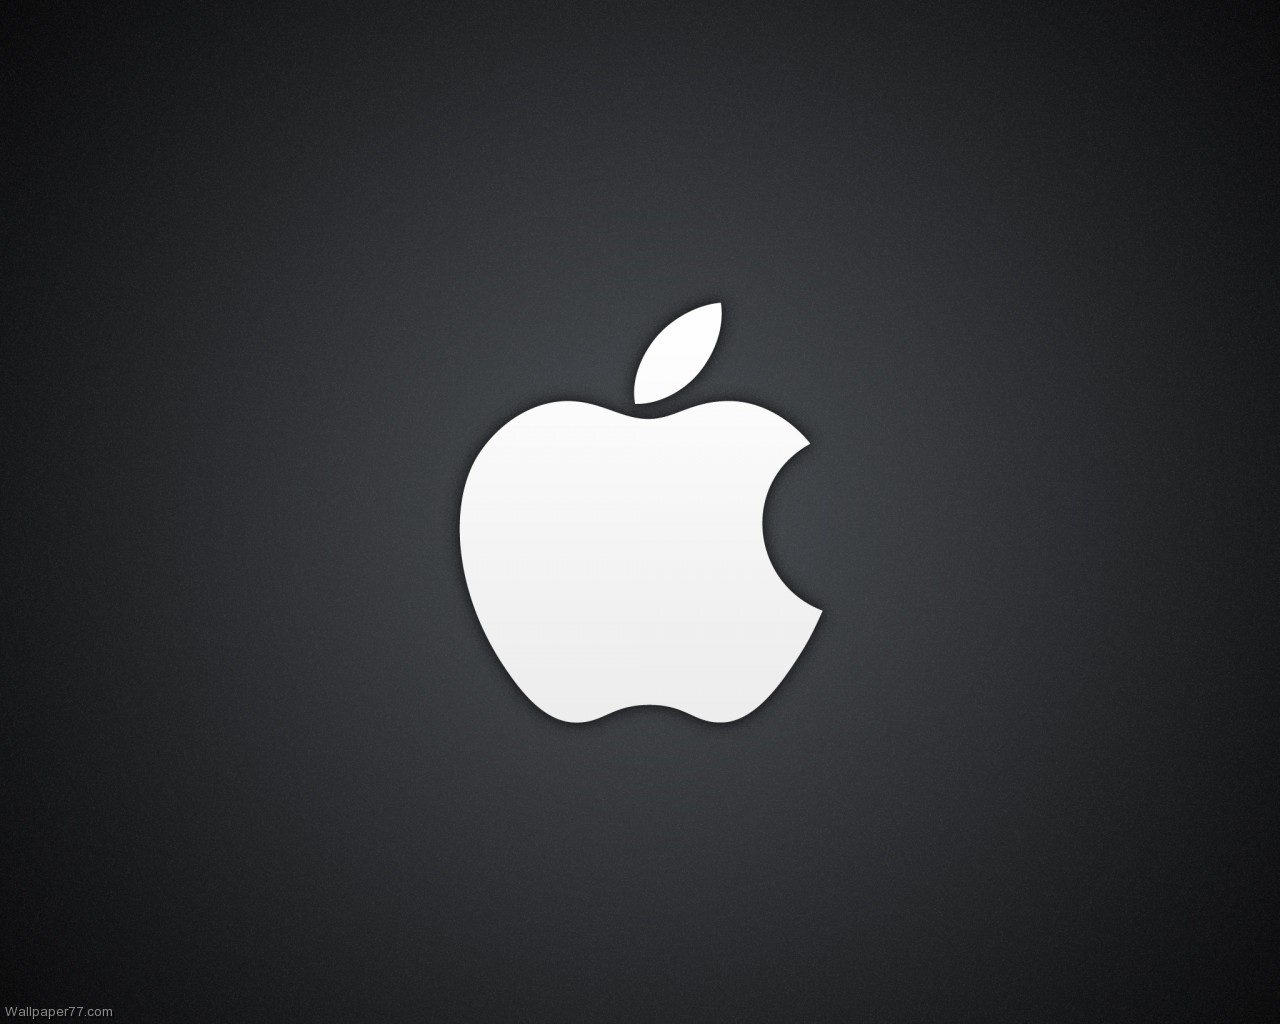 Apple Logo ipad 3 wallpaper ipad wallpaper retina display wallpaper 1280x1024